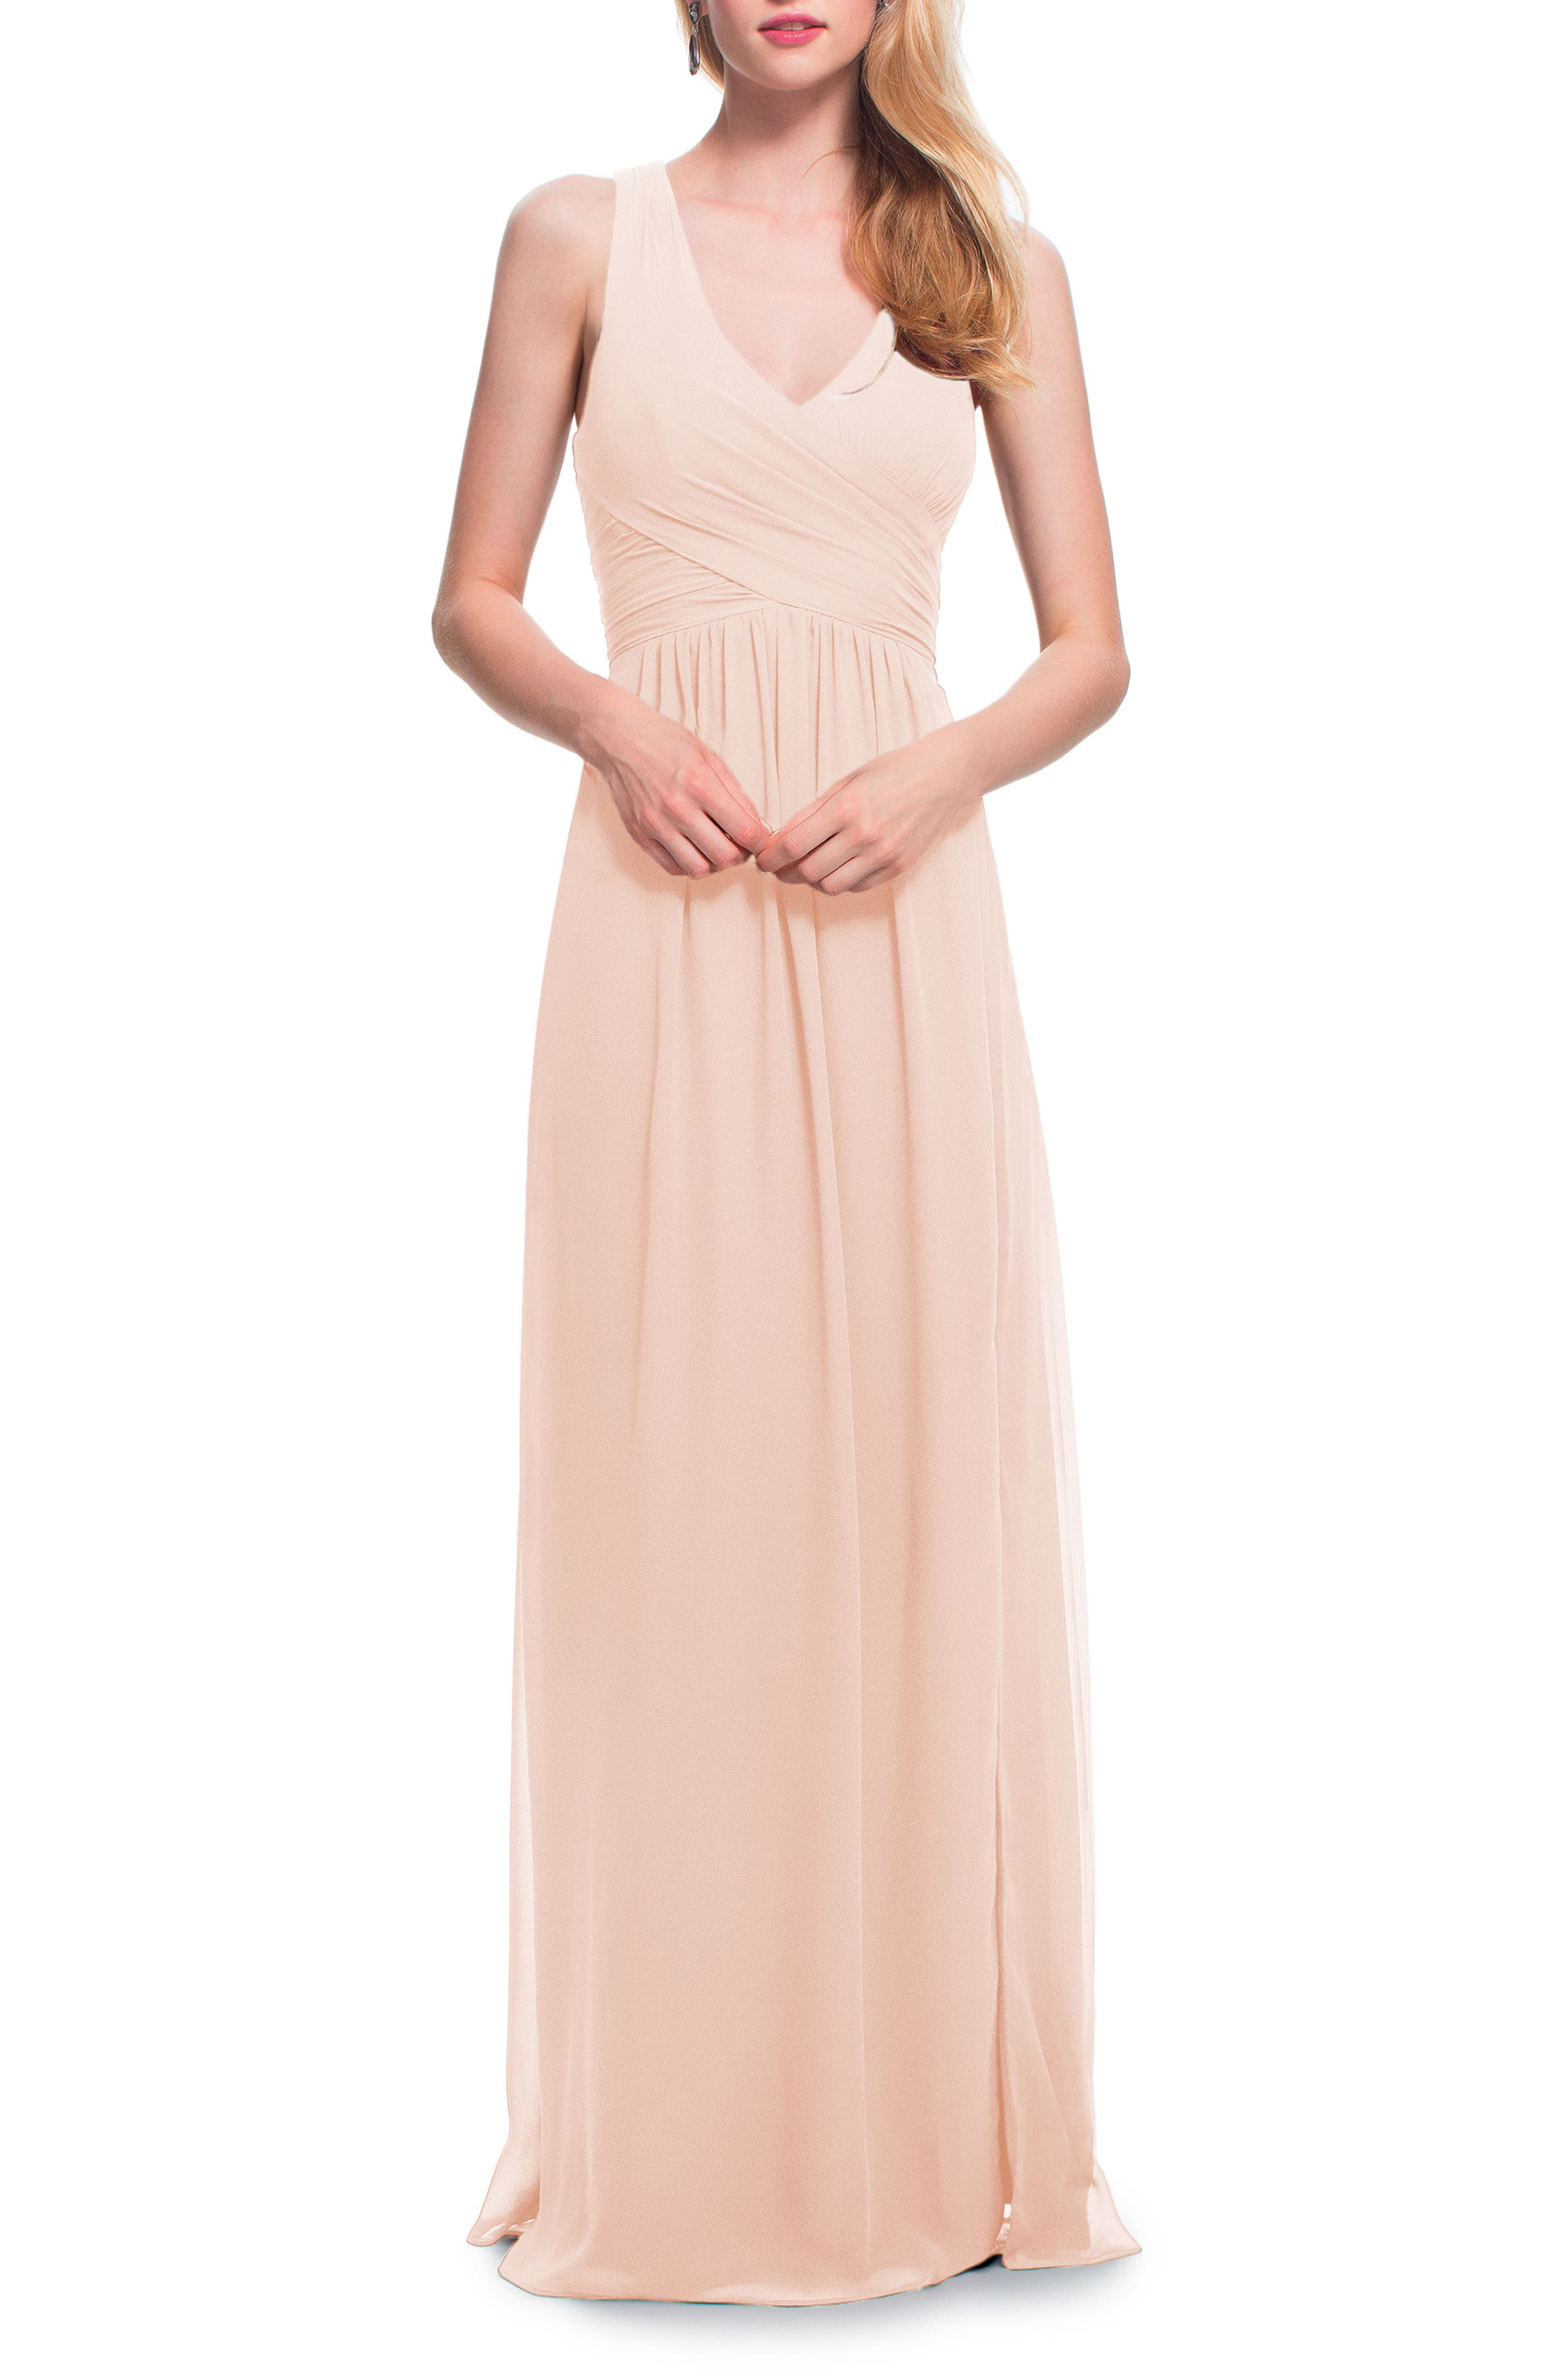 Bridesmaid wedding party dresses nordstrom levkoff back cutout chiffon gown ombrellifo Choice Image